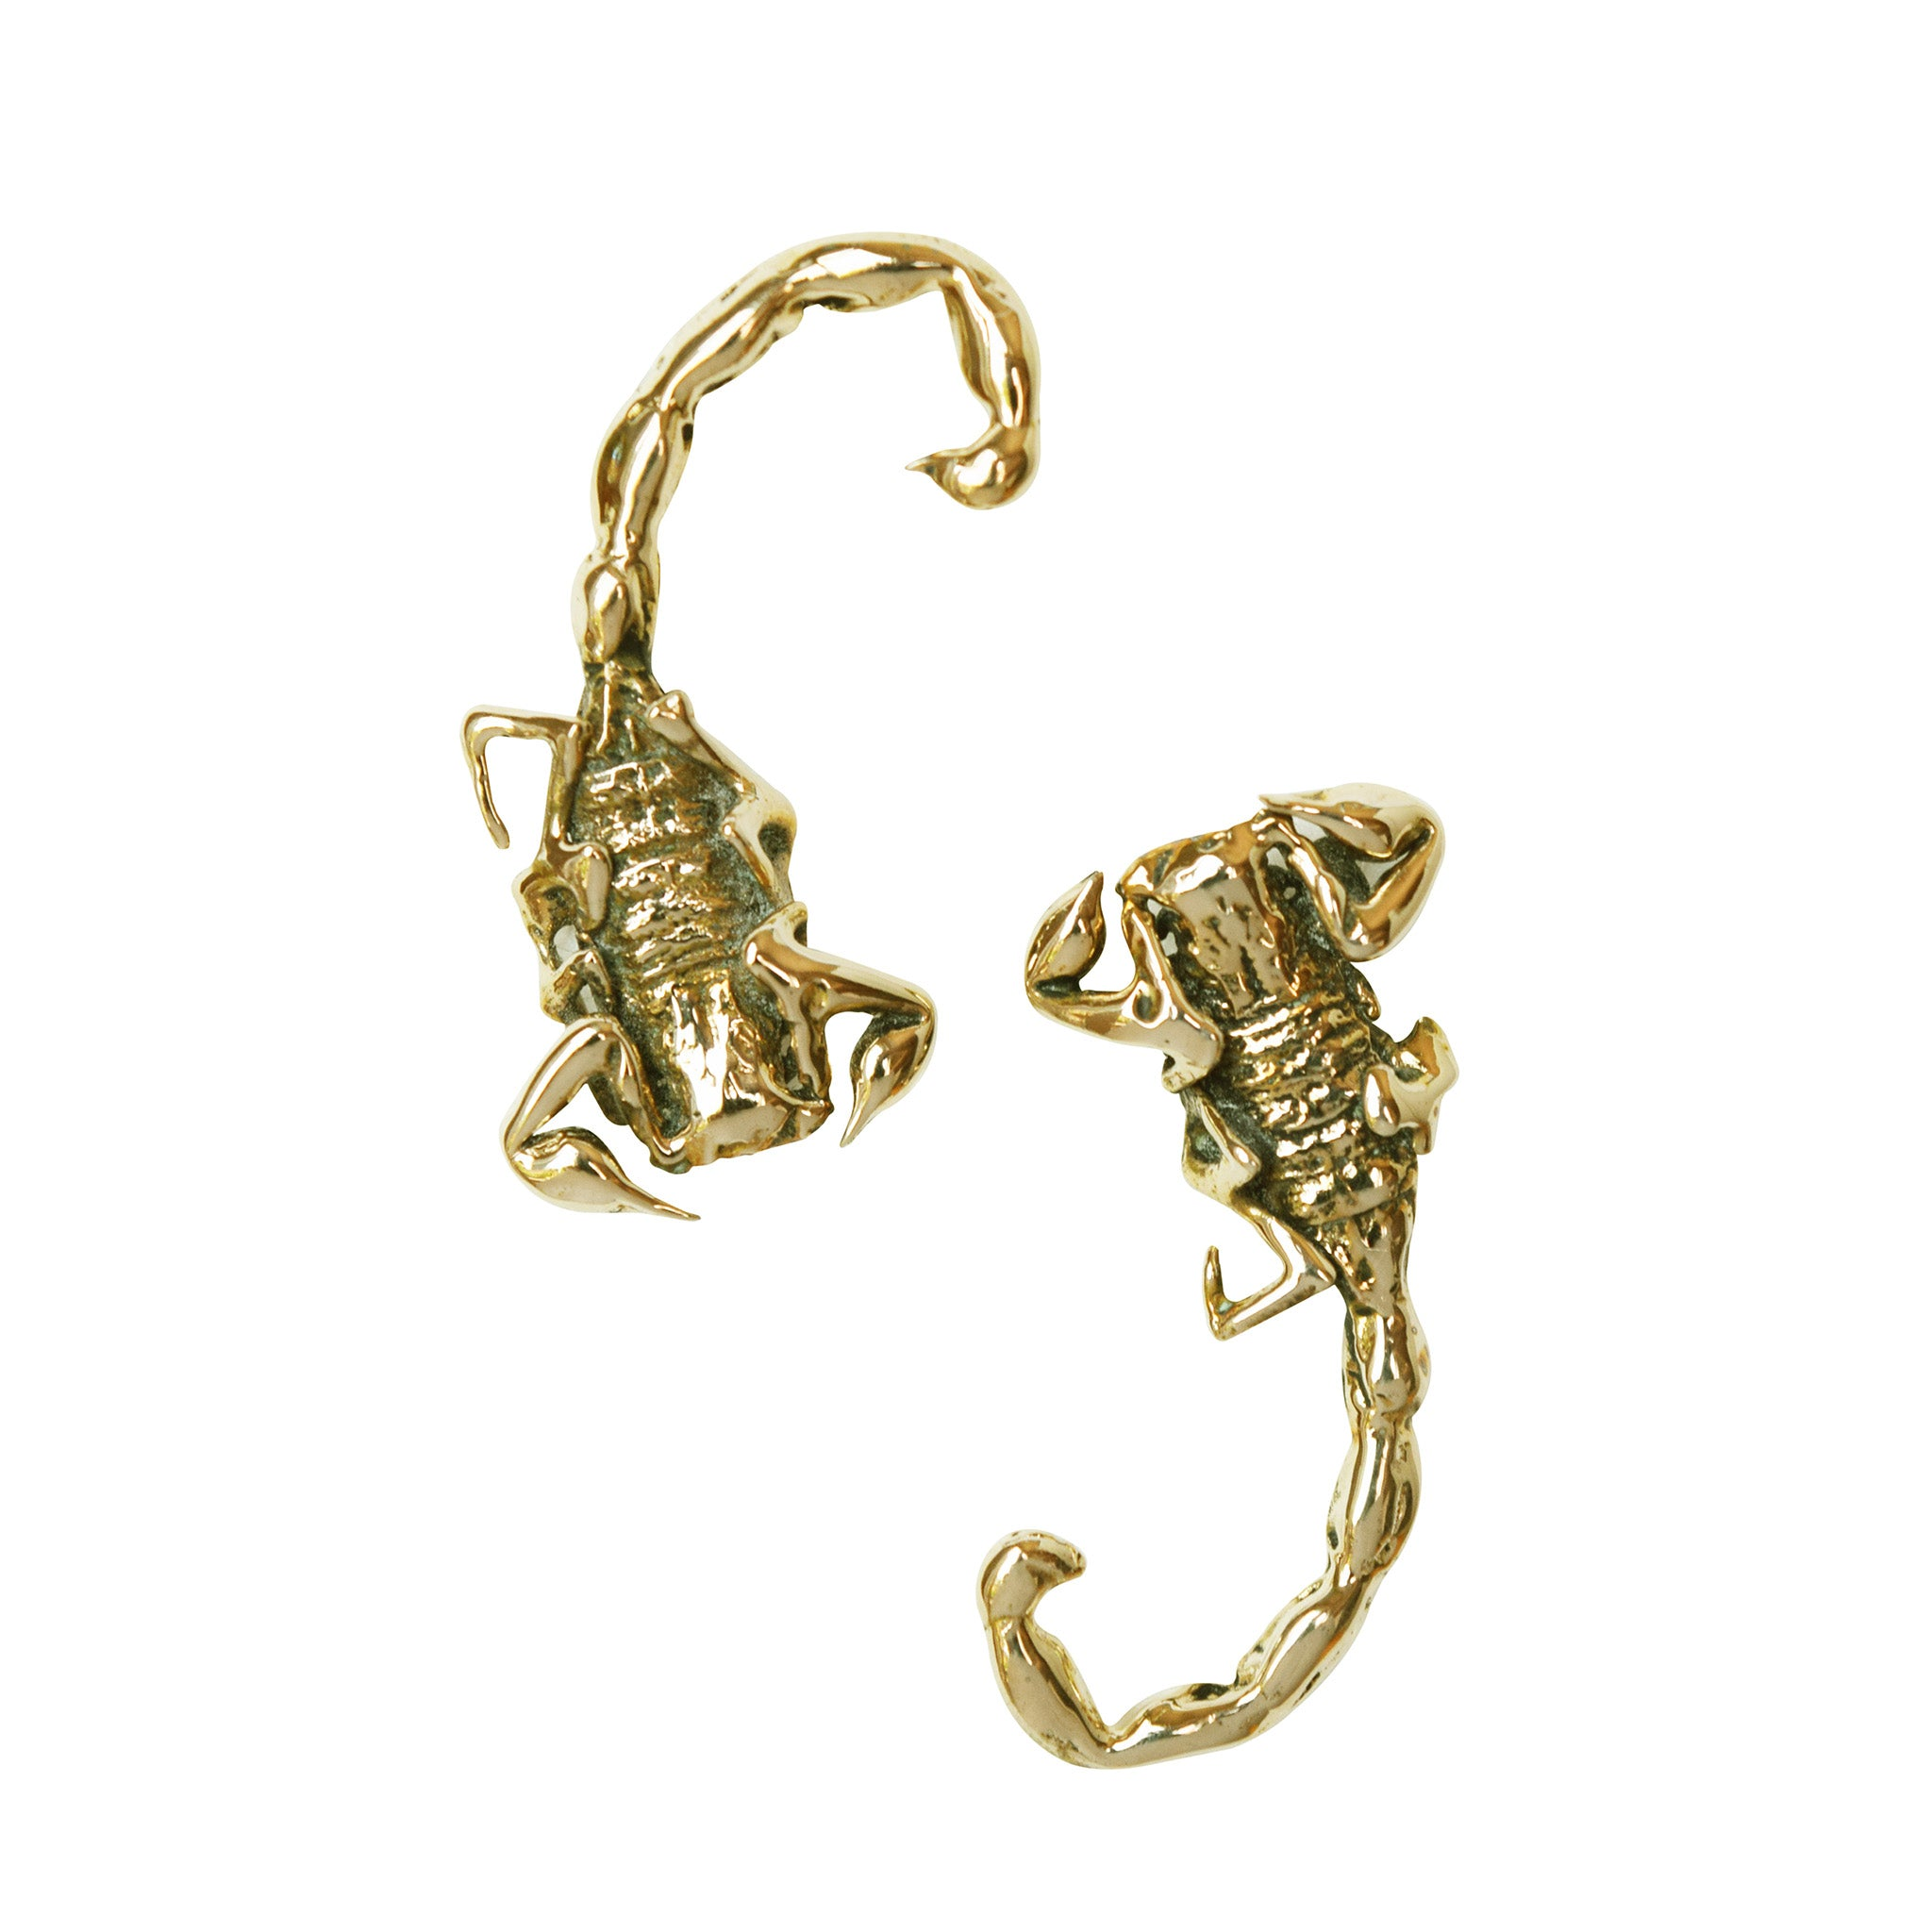 Scorpion Stud Earrings - Lissa Bowie